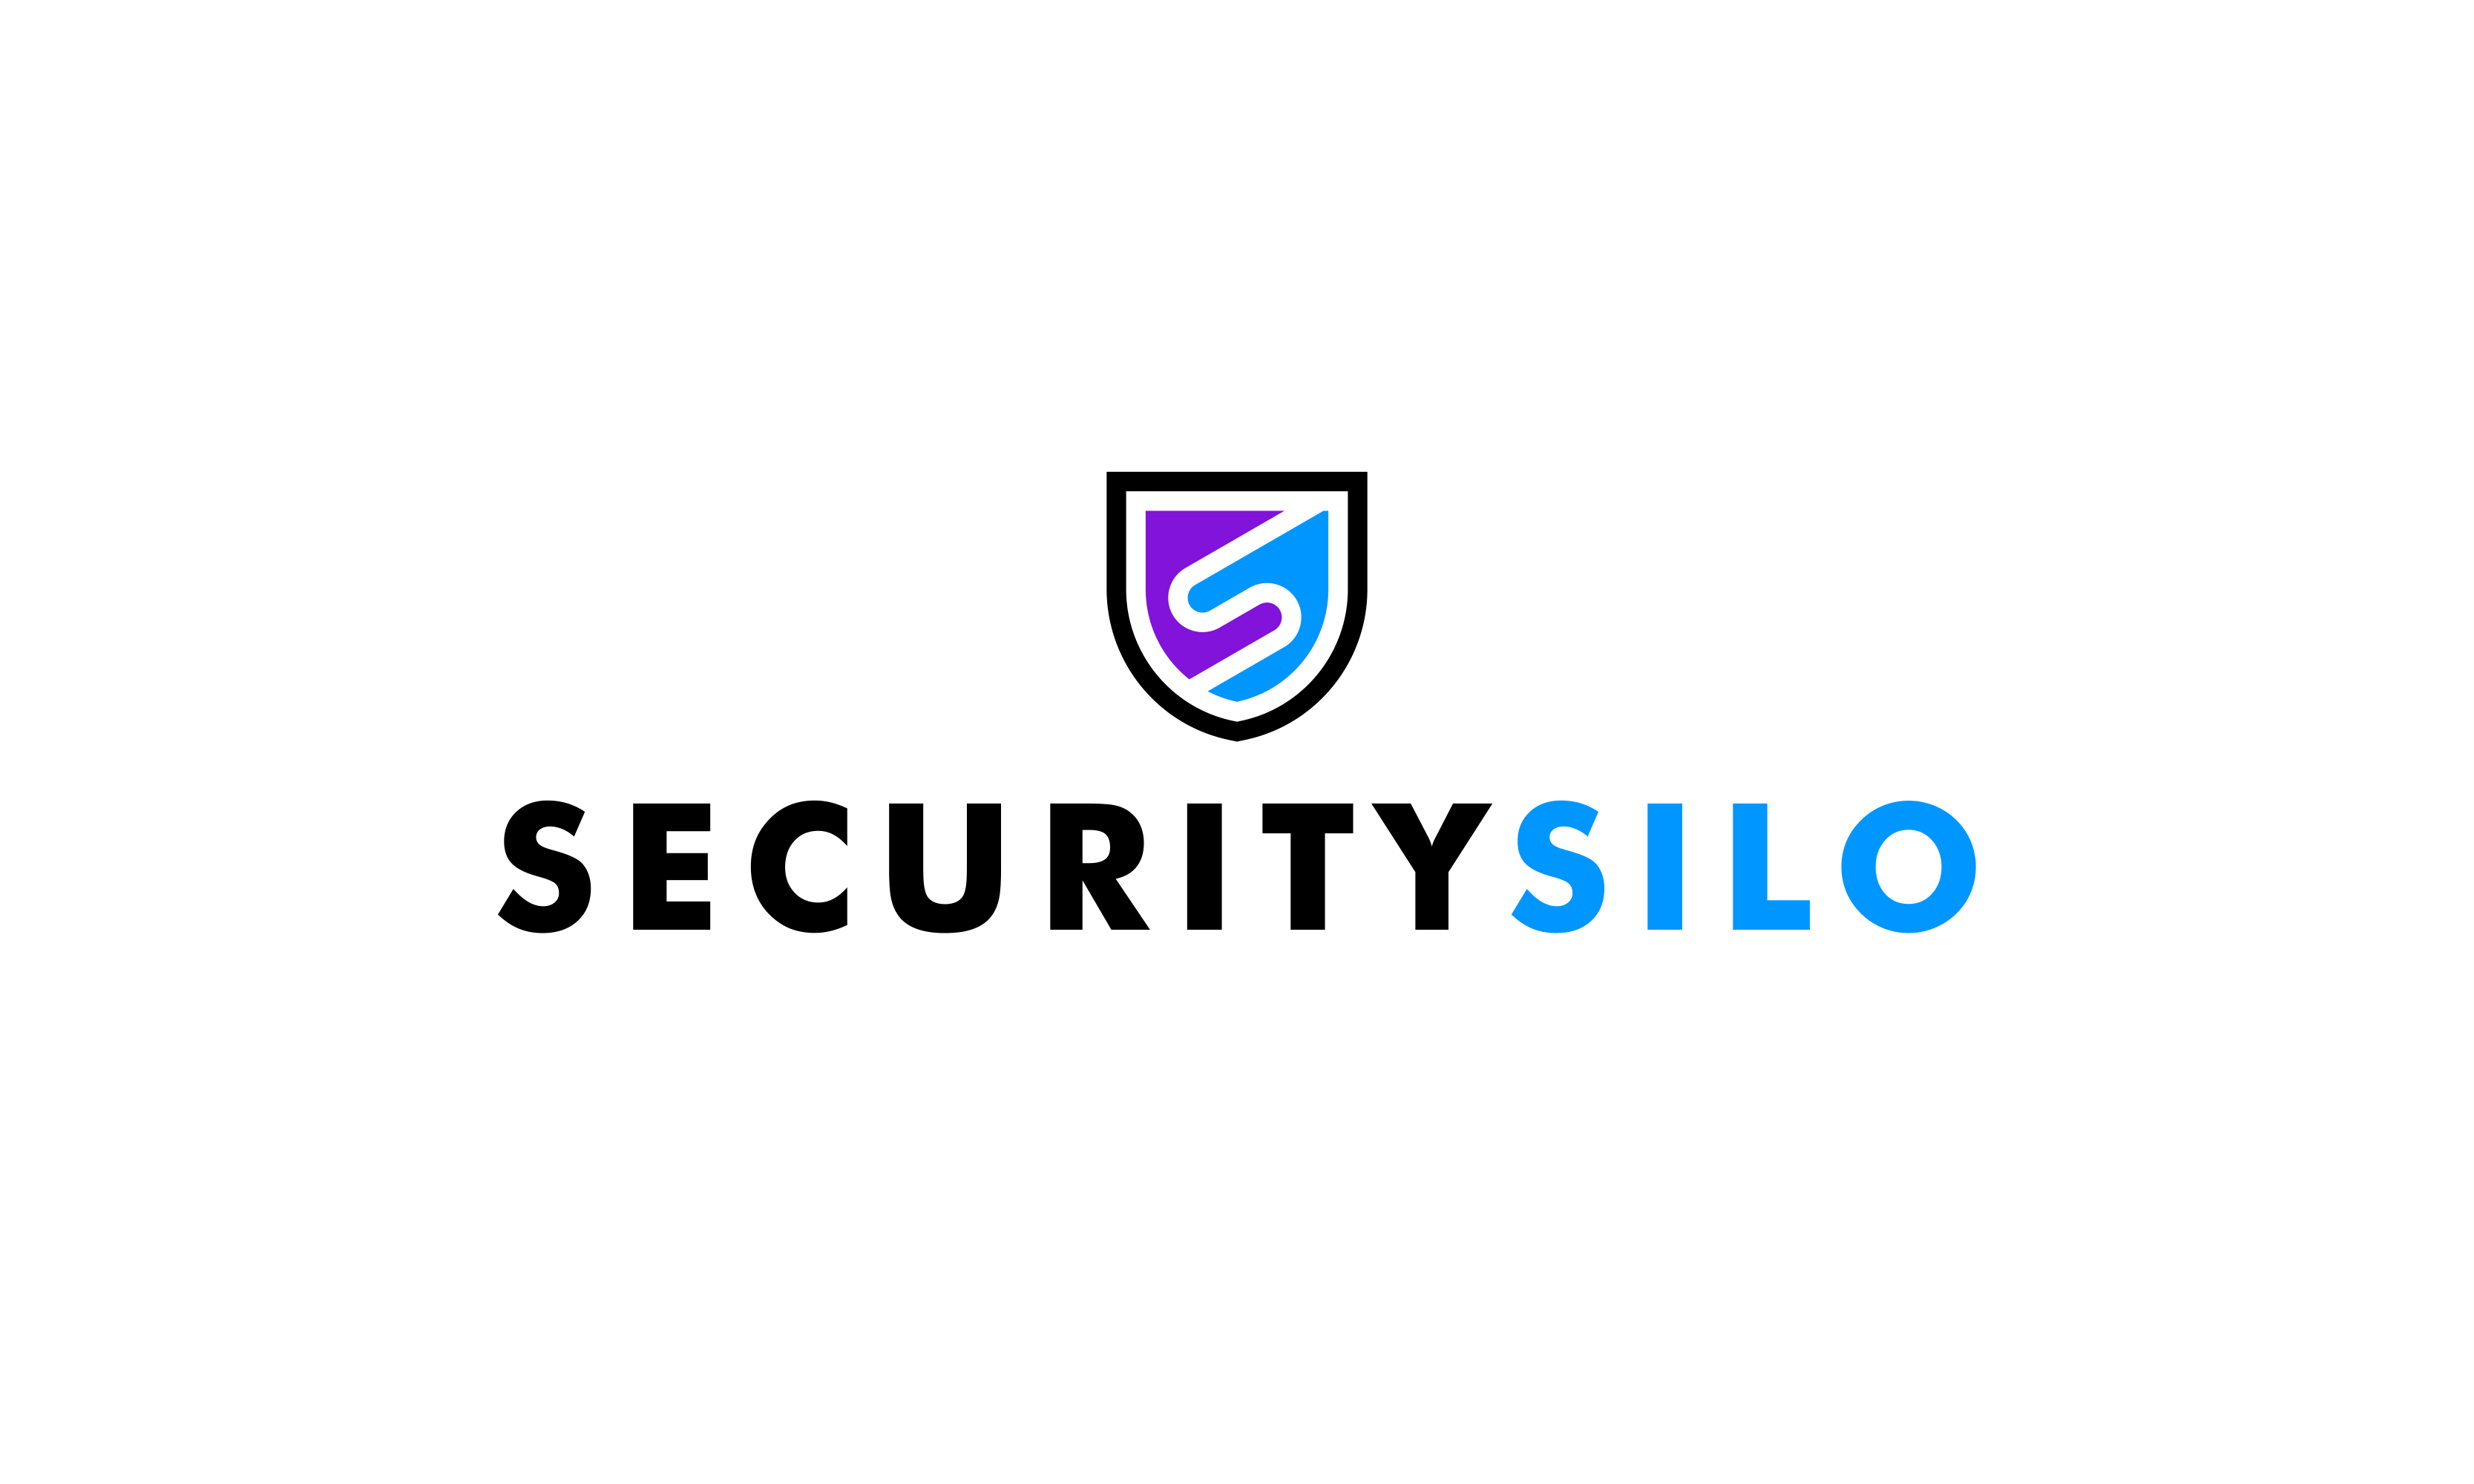 Securitysilo